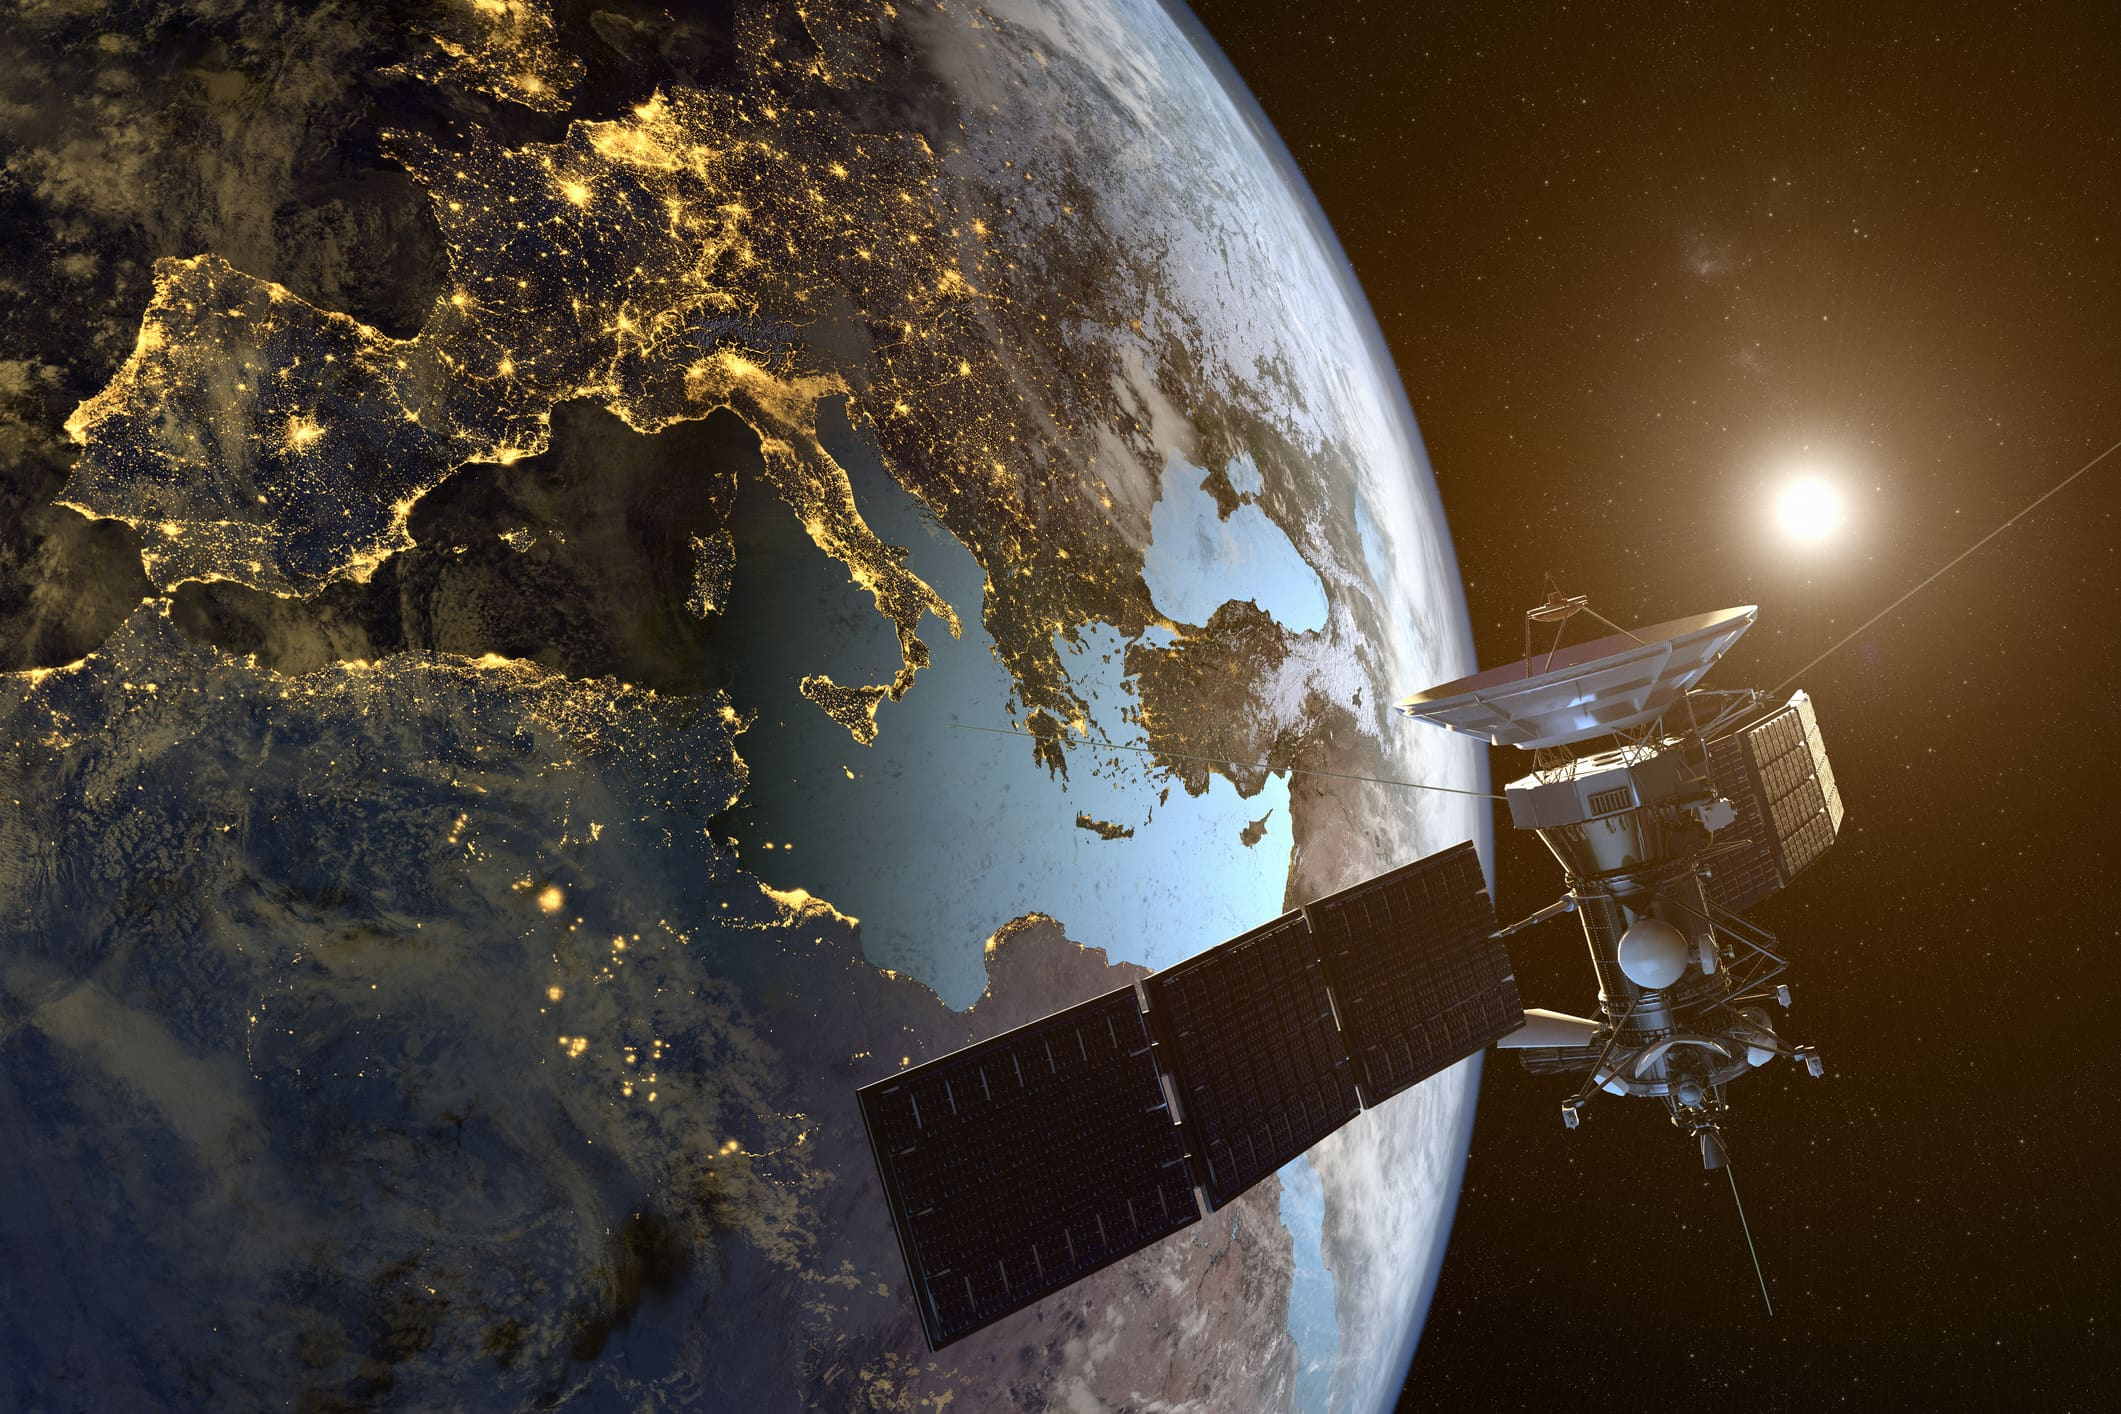 Space companies are racing to beam web access to the entire planet. But 'space junk' is a big worry